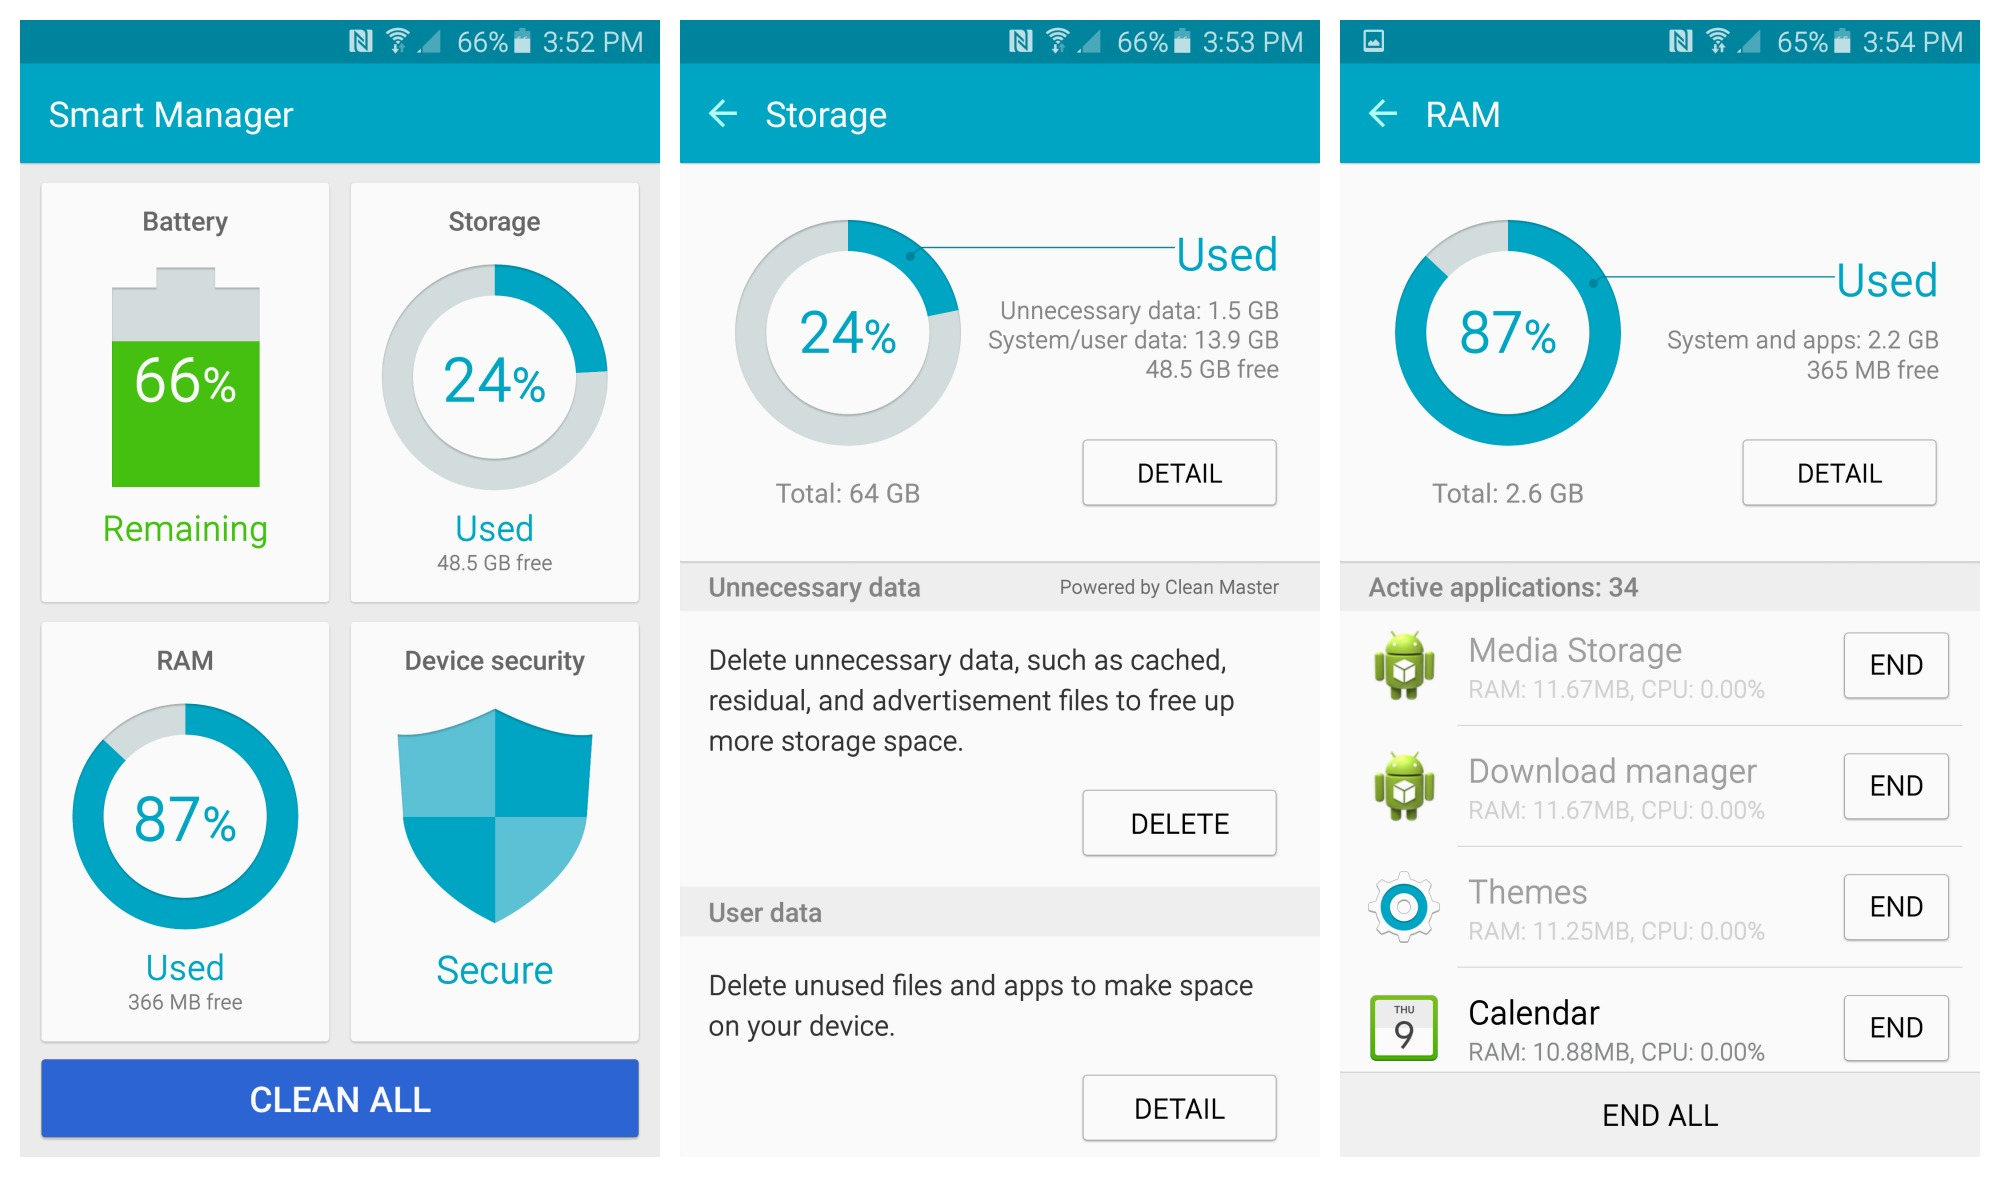 50 samsung galaxy s6 tips tricks samsung galaxy s6 smart manager app ccuart Choice Image